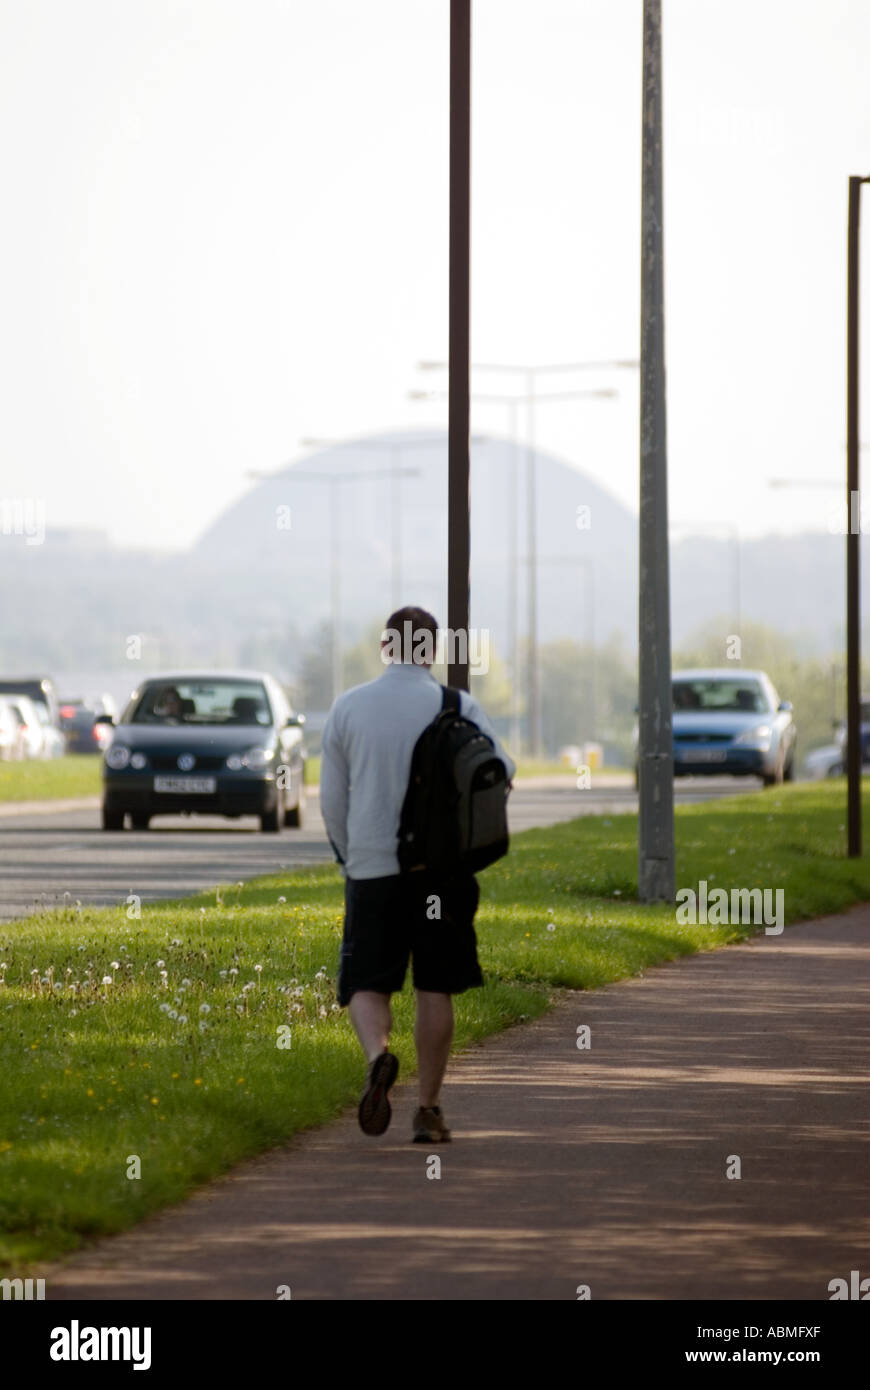 man walking towards Central Milton Keynes road snow dome UK cars driving Central Milton Keynes, the Centre MK - Stock Image